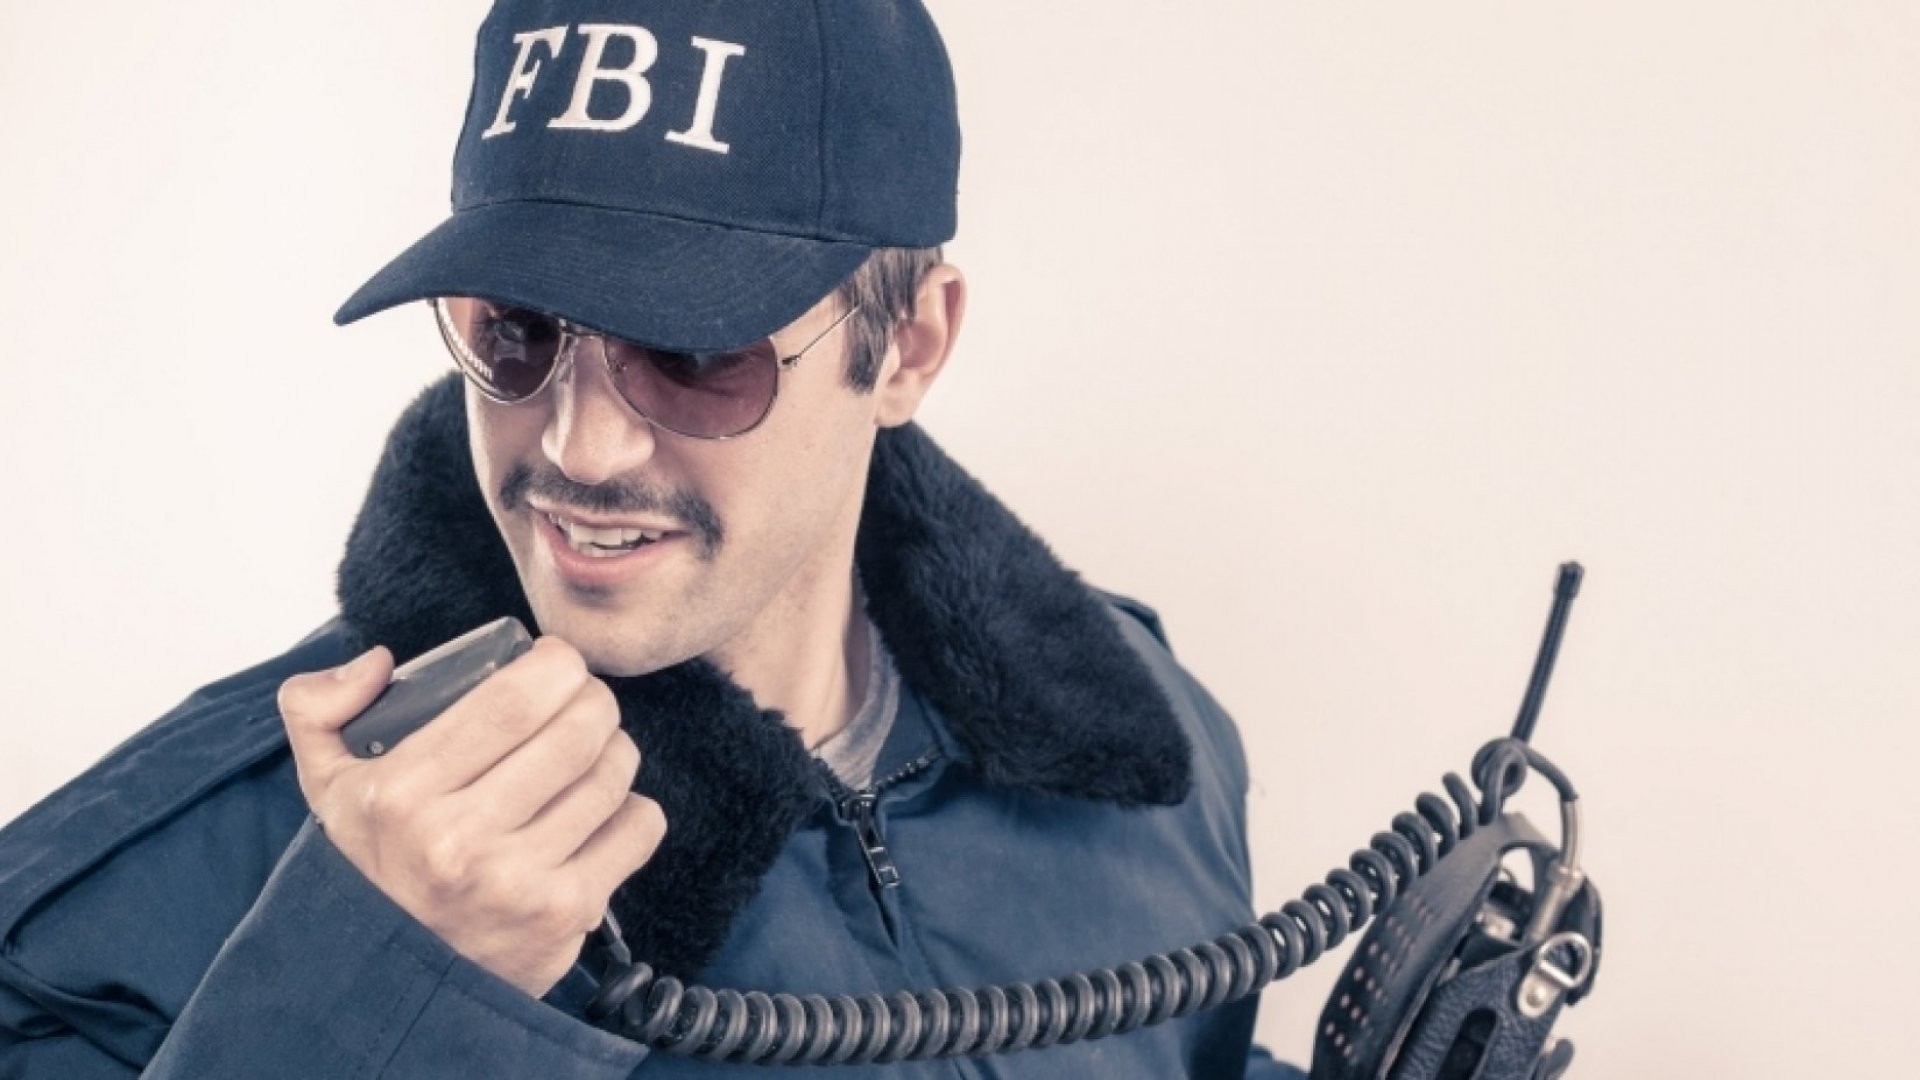 This Is How to Talk Your Way Into the Best Salary, According to a Former FBI Hostage Negotiator